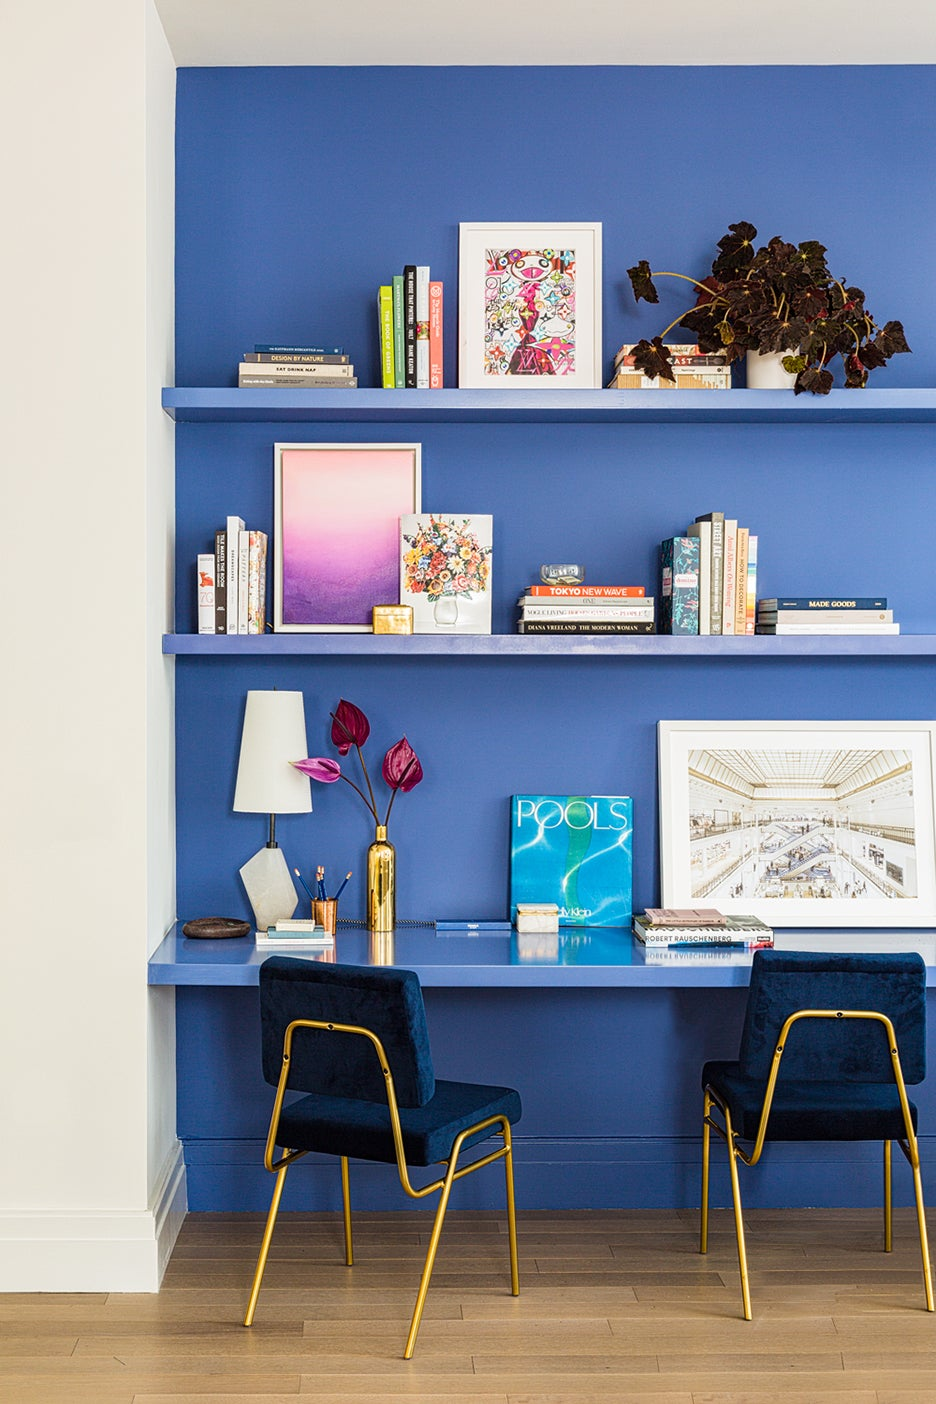 Psychologists Say These Colors Are Best to Paint a Home Office